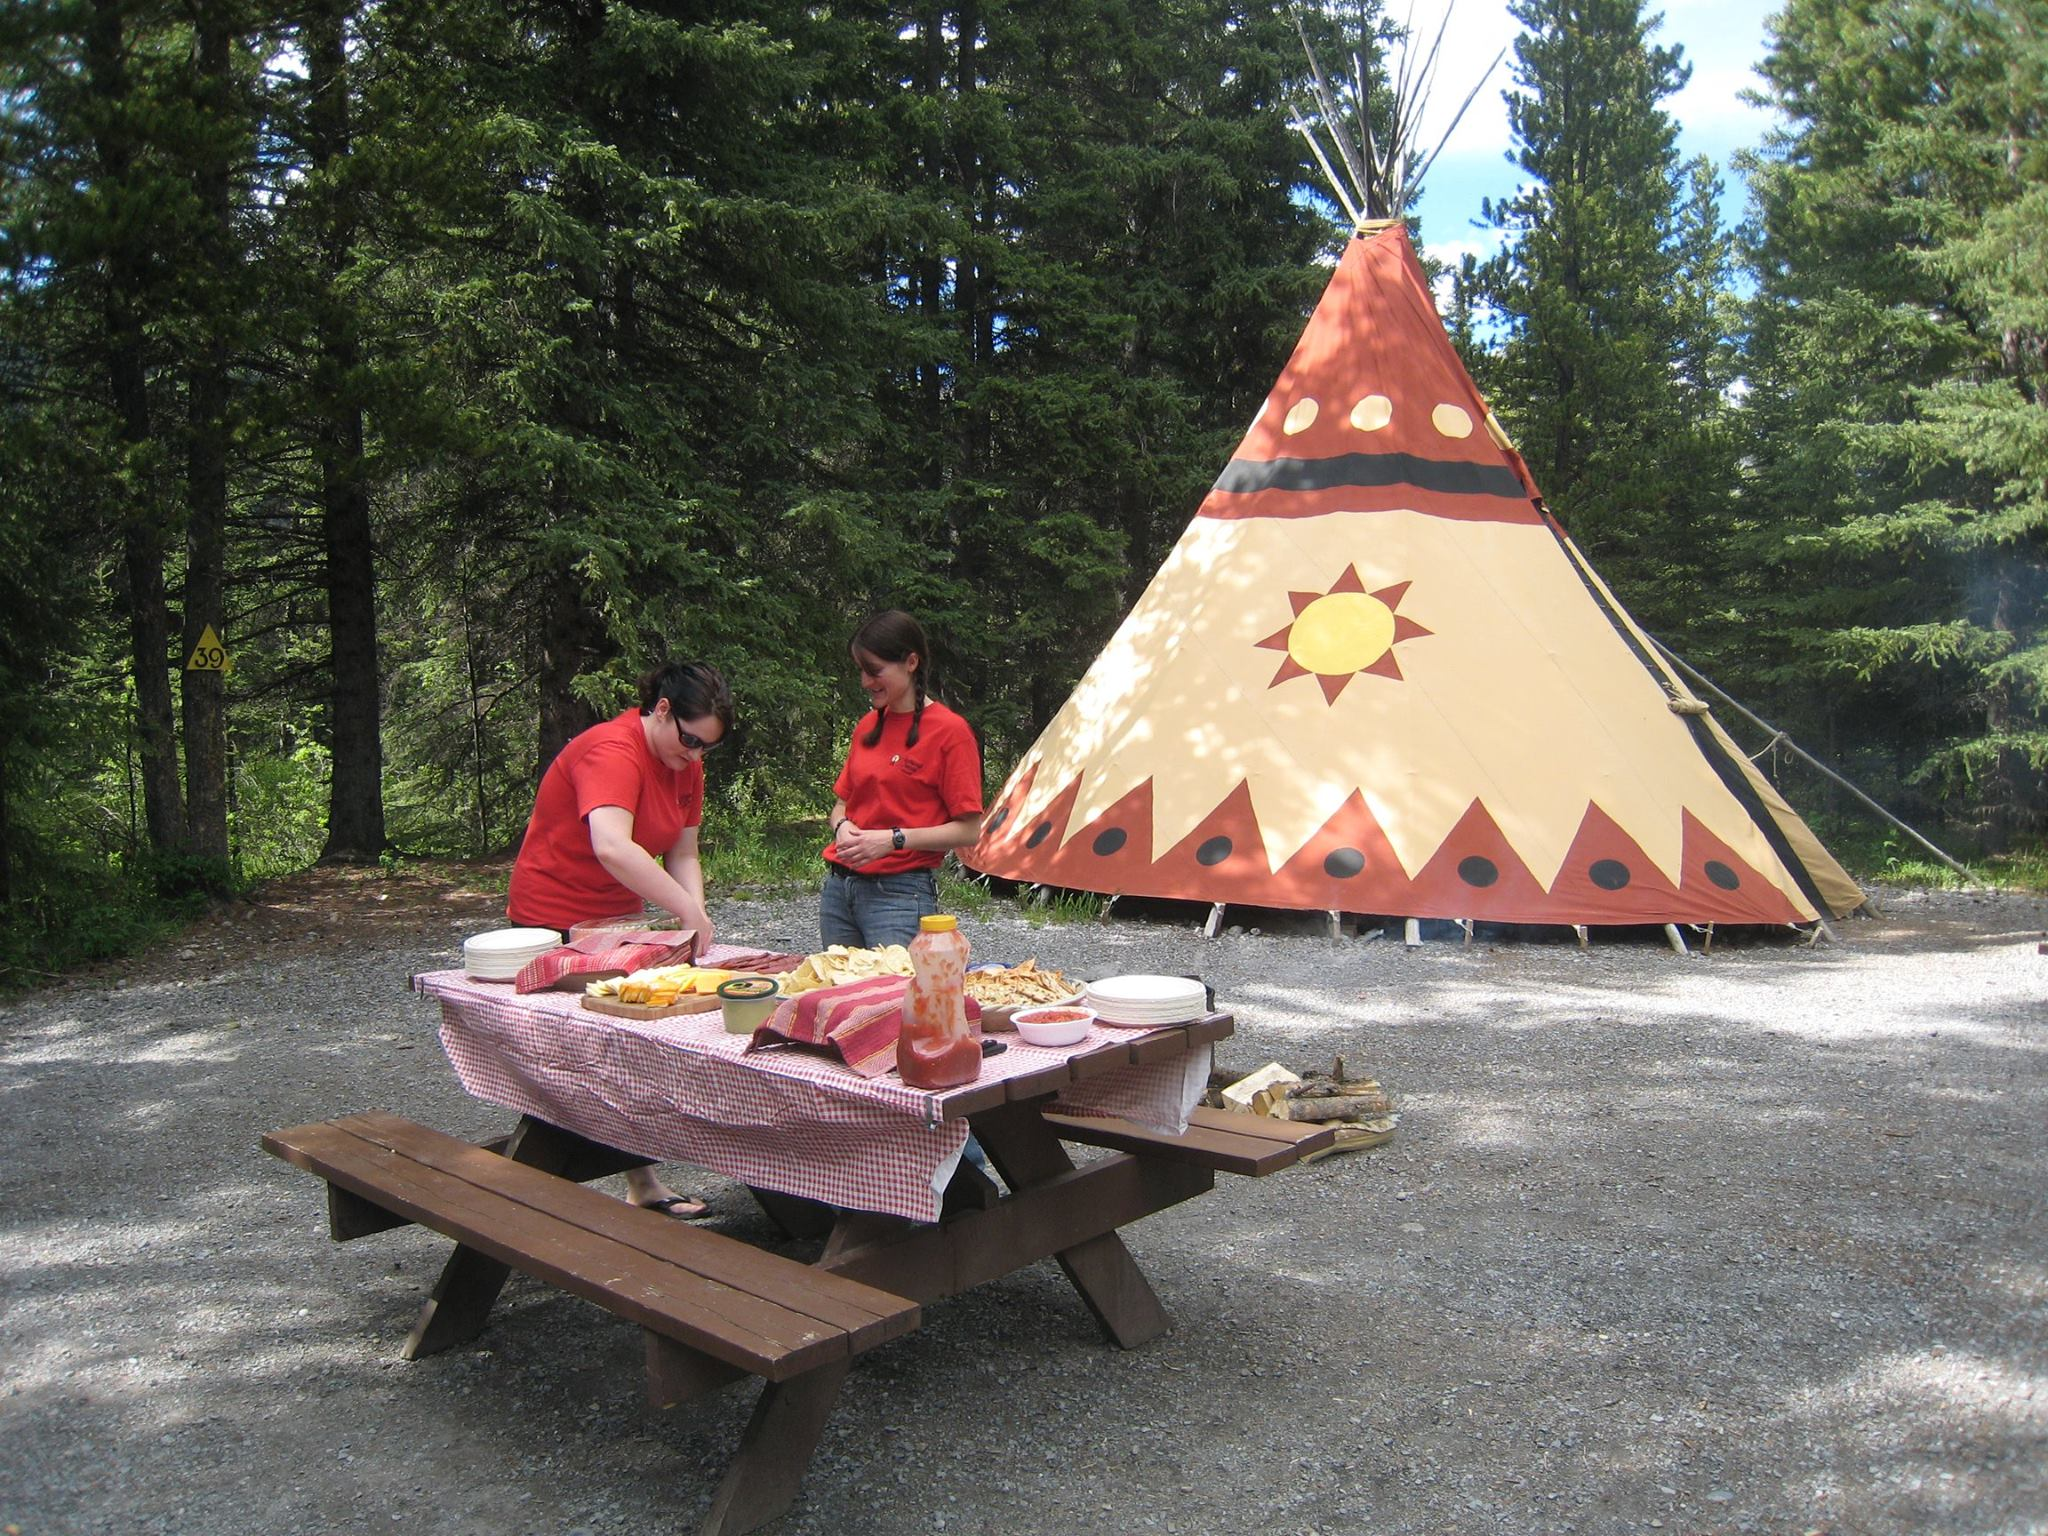 Sundance Lodges offer tipis and trapper tents, as well as spots to put your RV or tent (Sundance Lodges/Facebook)